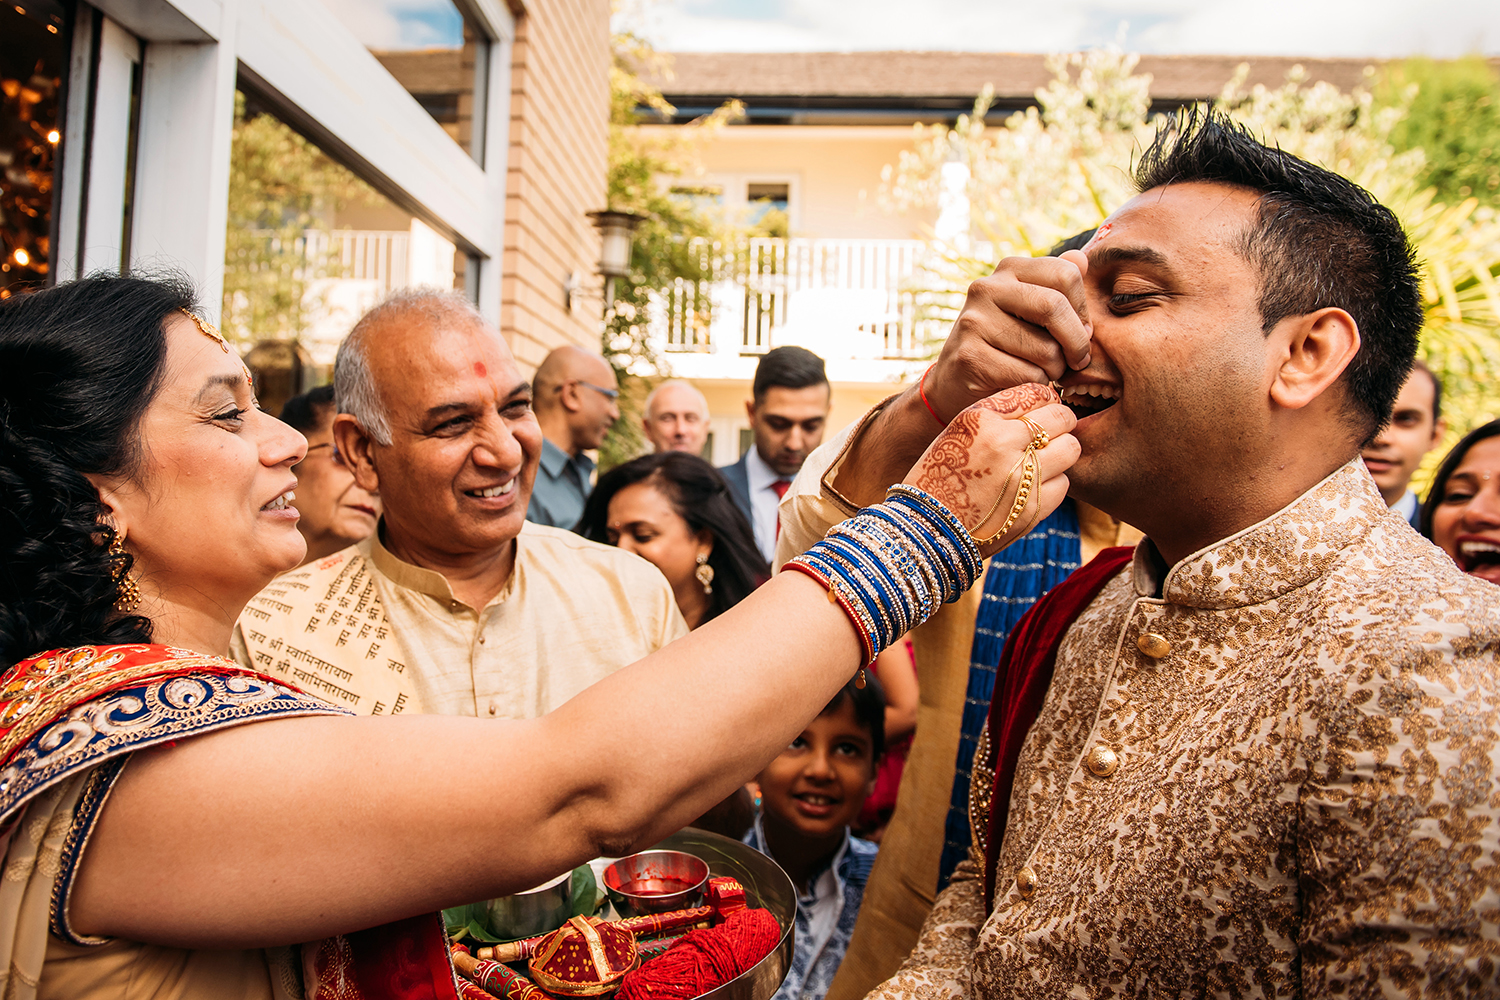 Games during the groom's entrance